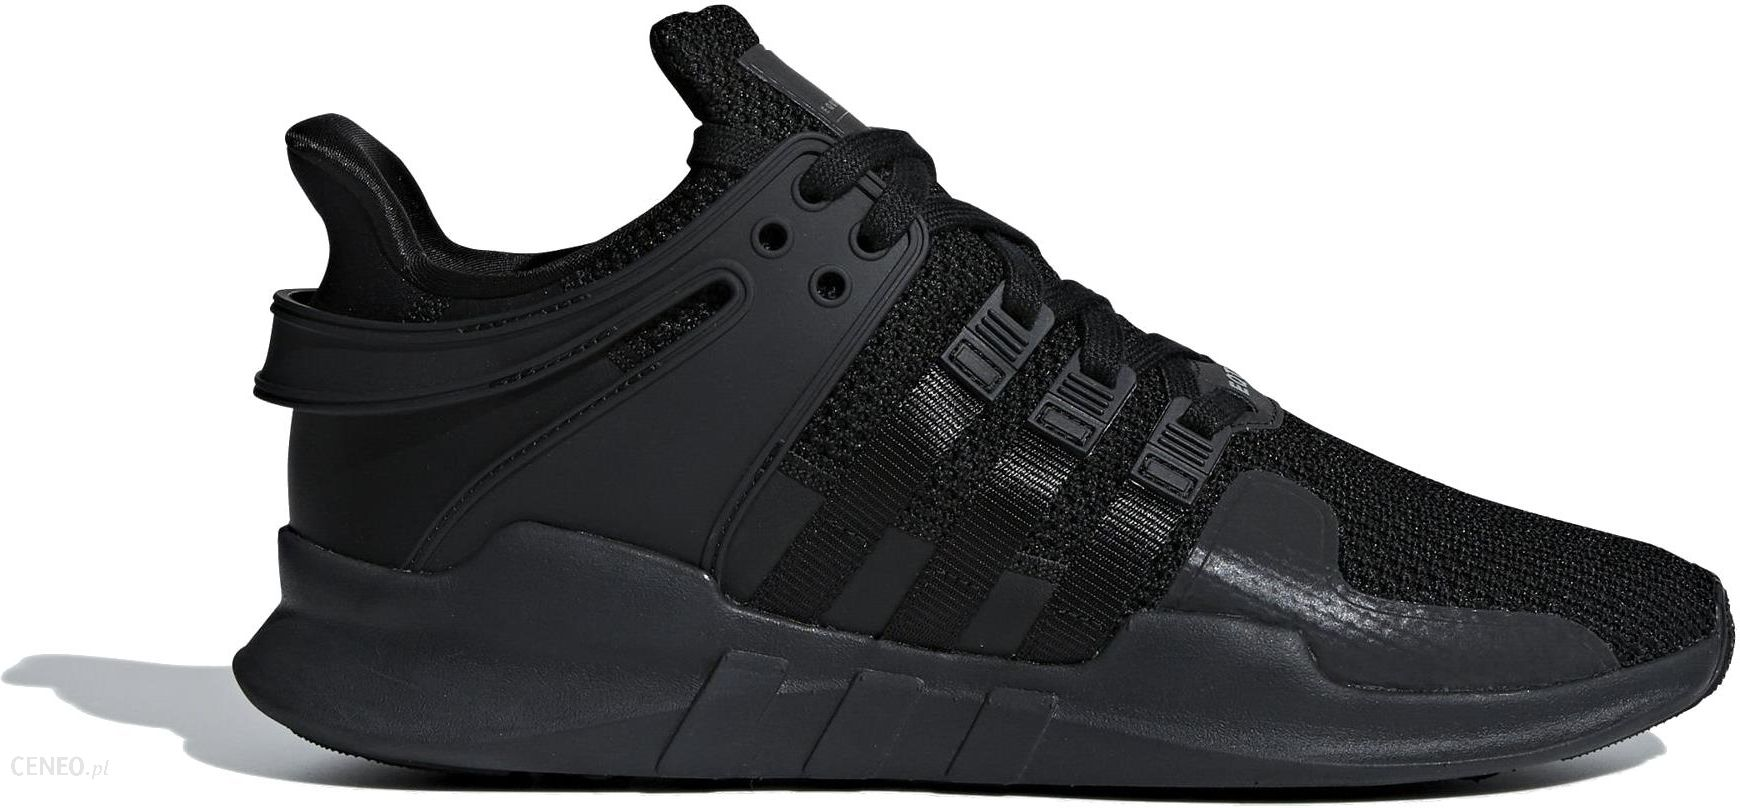 Adidas Originals Eqt Support Adv D96771 Ceny i opinie Ceneo.pl